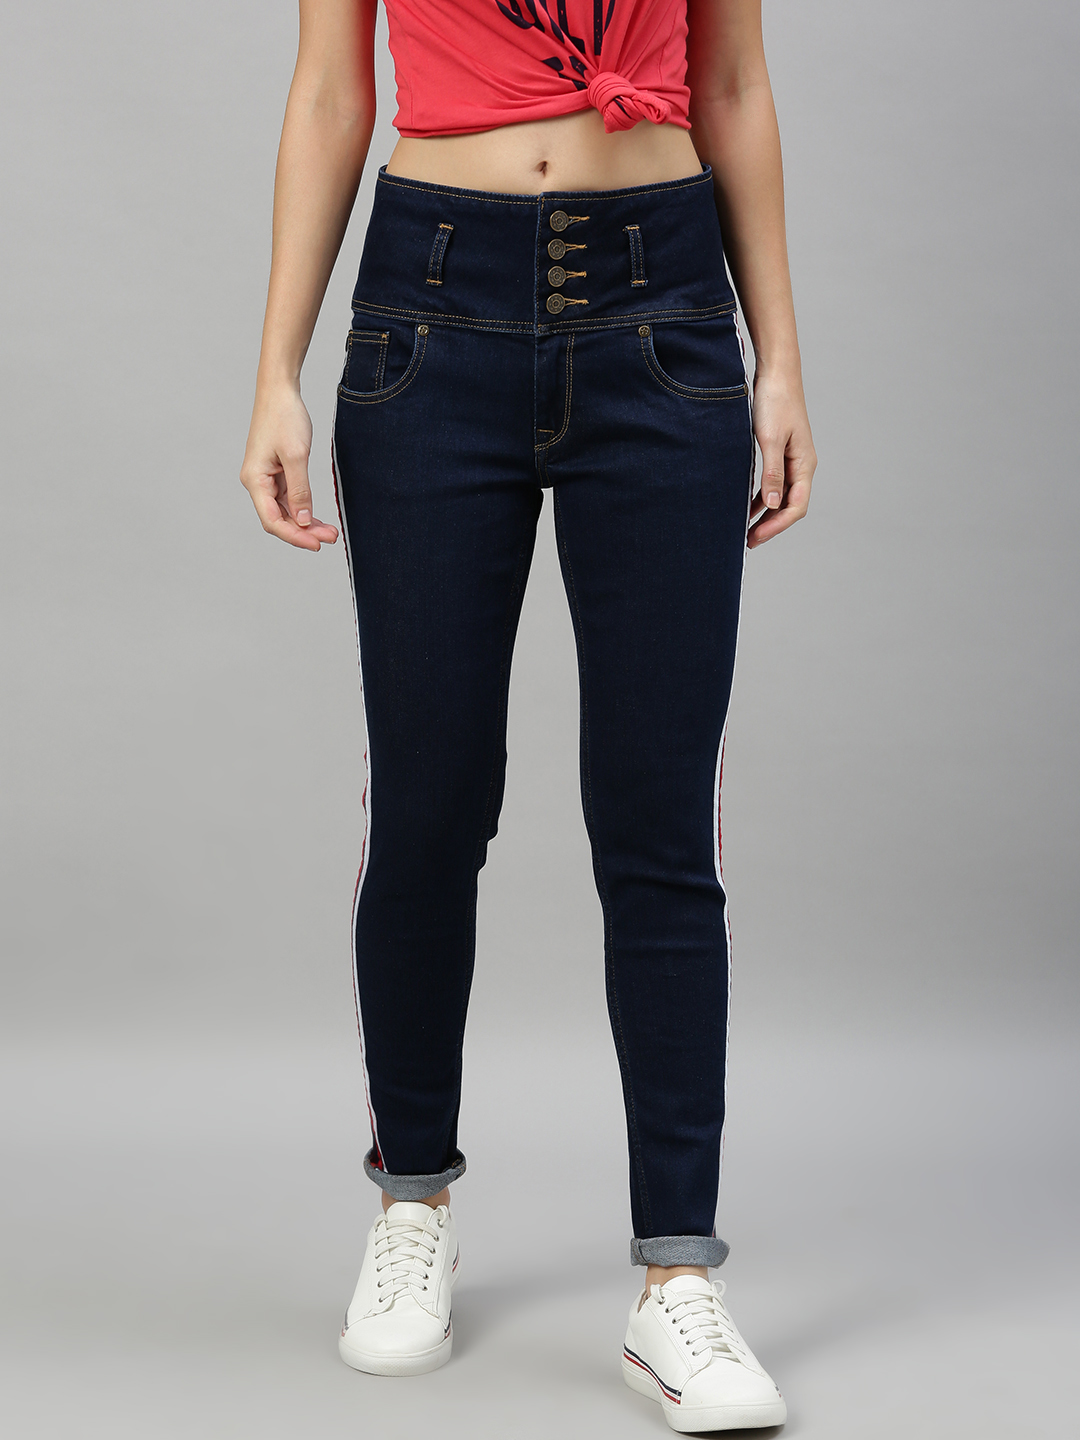 Enviously Young | Enviously Young High Rise 5 Button Navy Blue Jeans with Sidetape